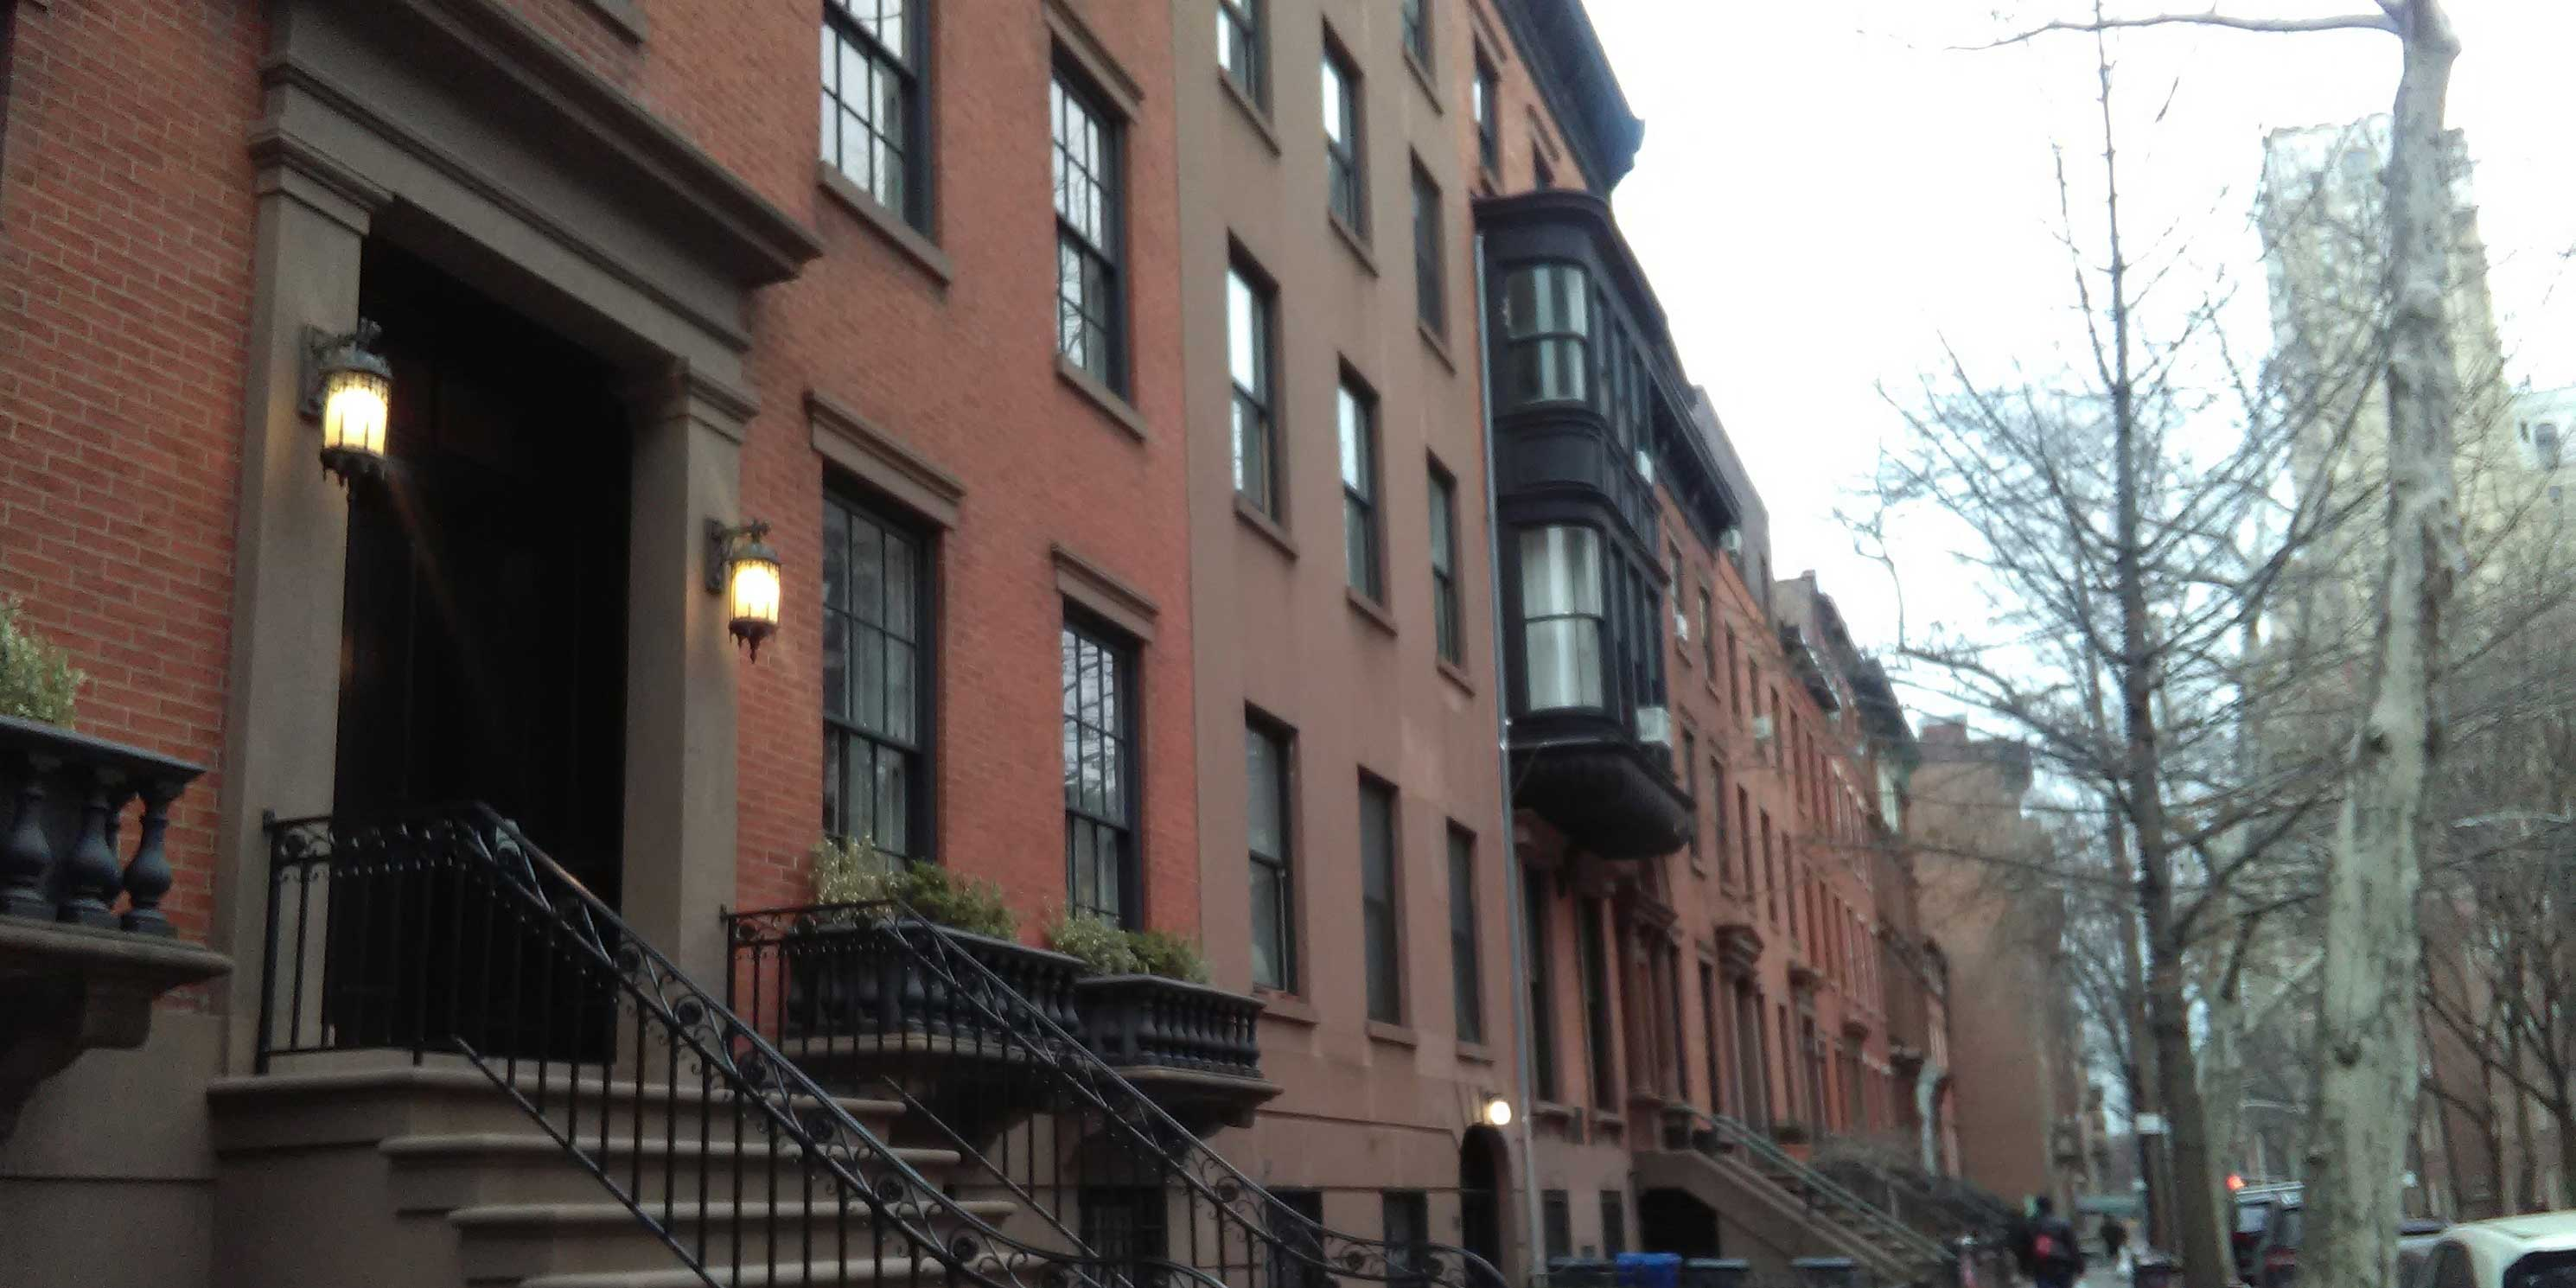 row of brownstone buildings in New York City